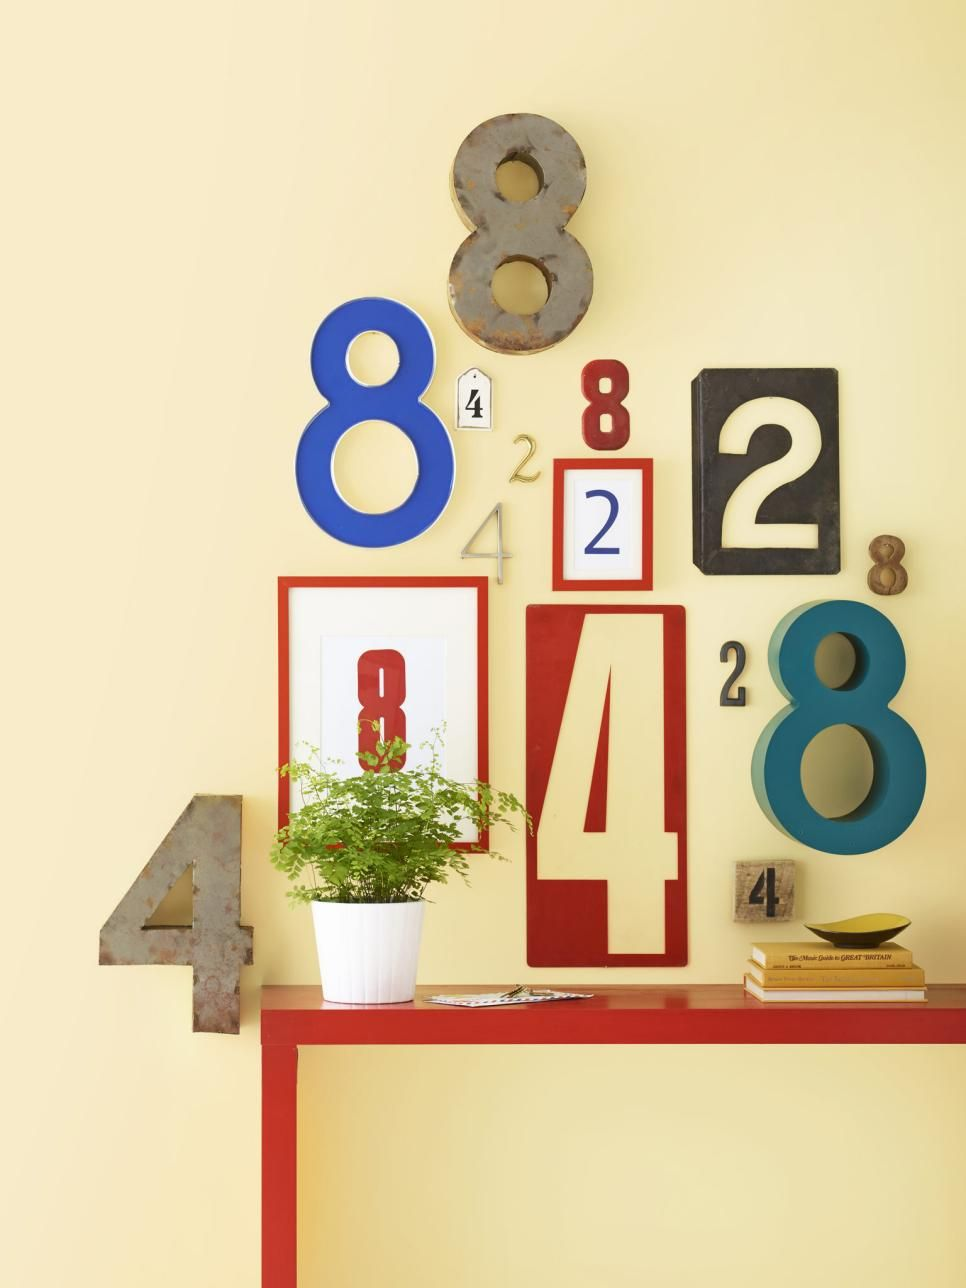 7 Ways to Fill Up Your Walls | Hgtv magazine, Blank space and Hgtv